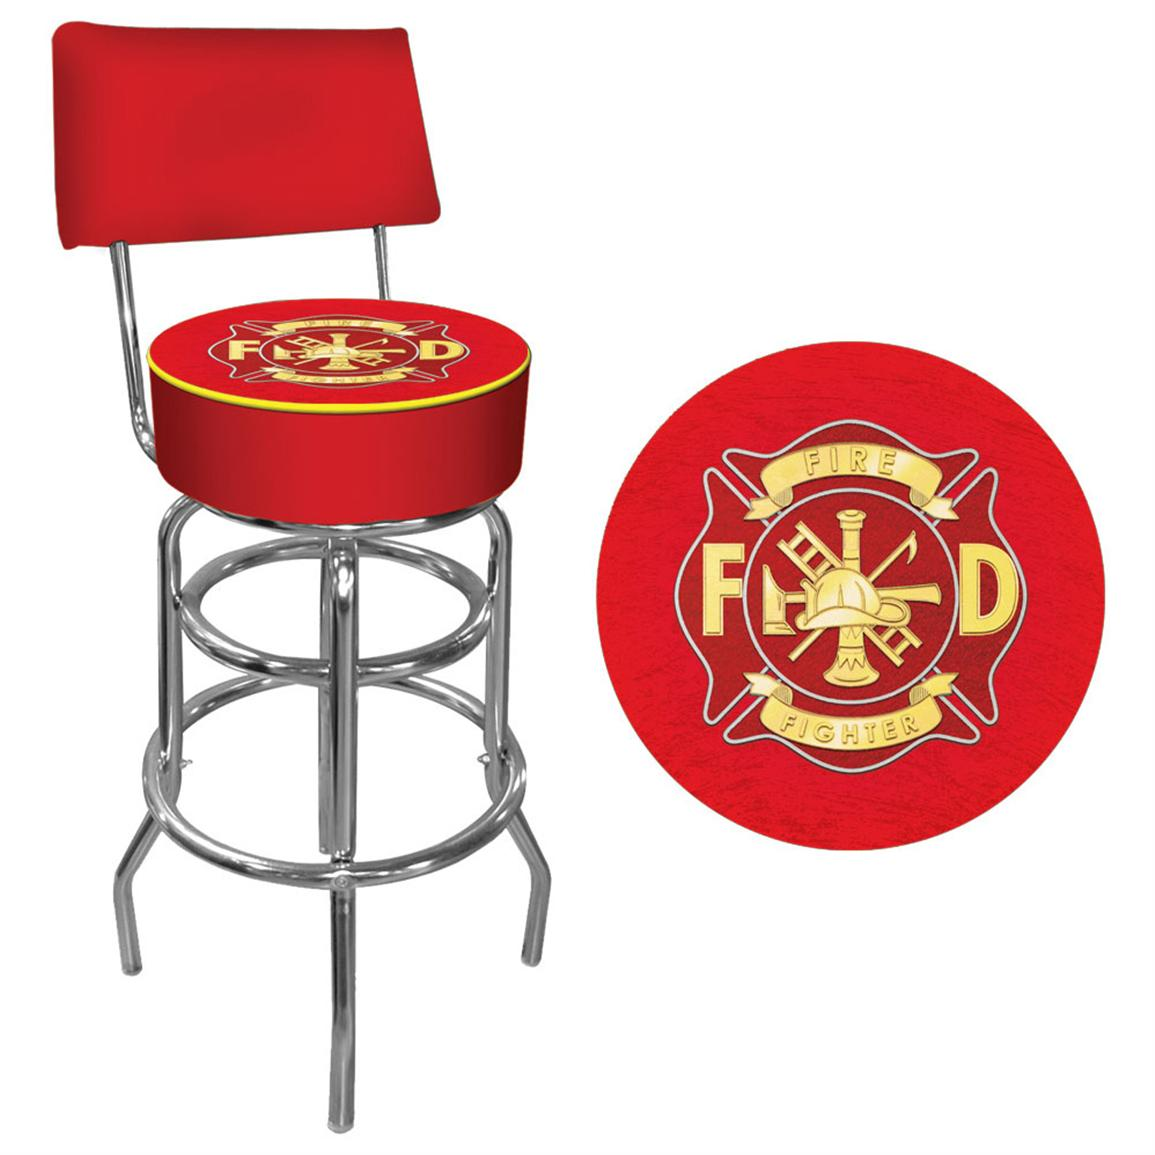 Heroes Padded Bar Stool with Back, Fire Fighter